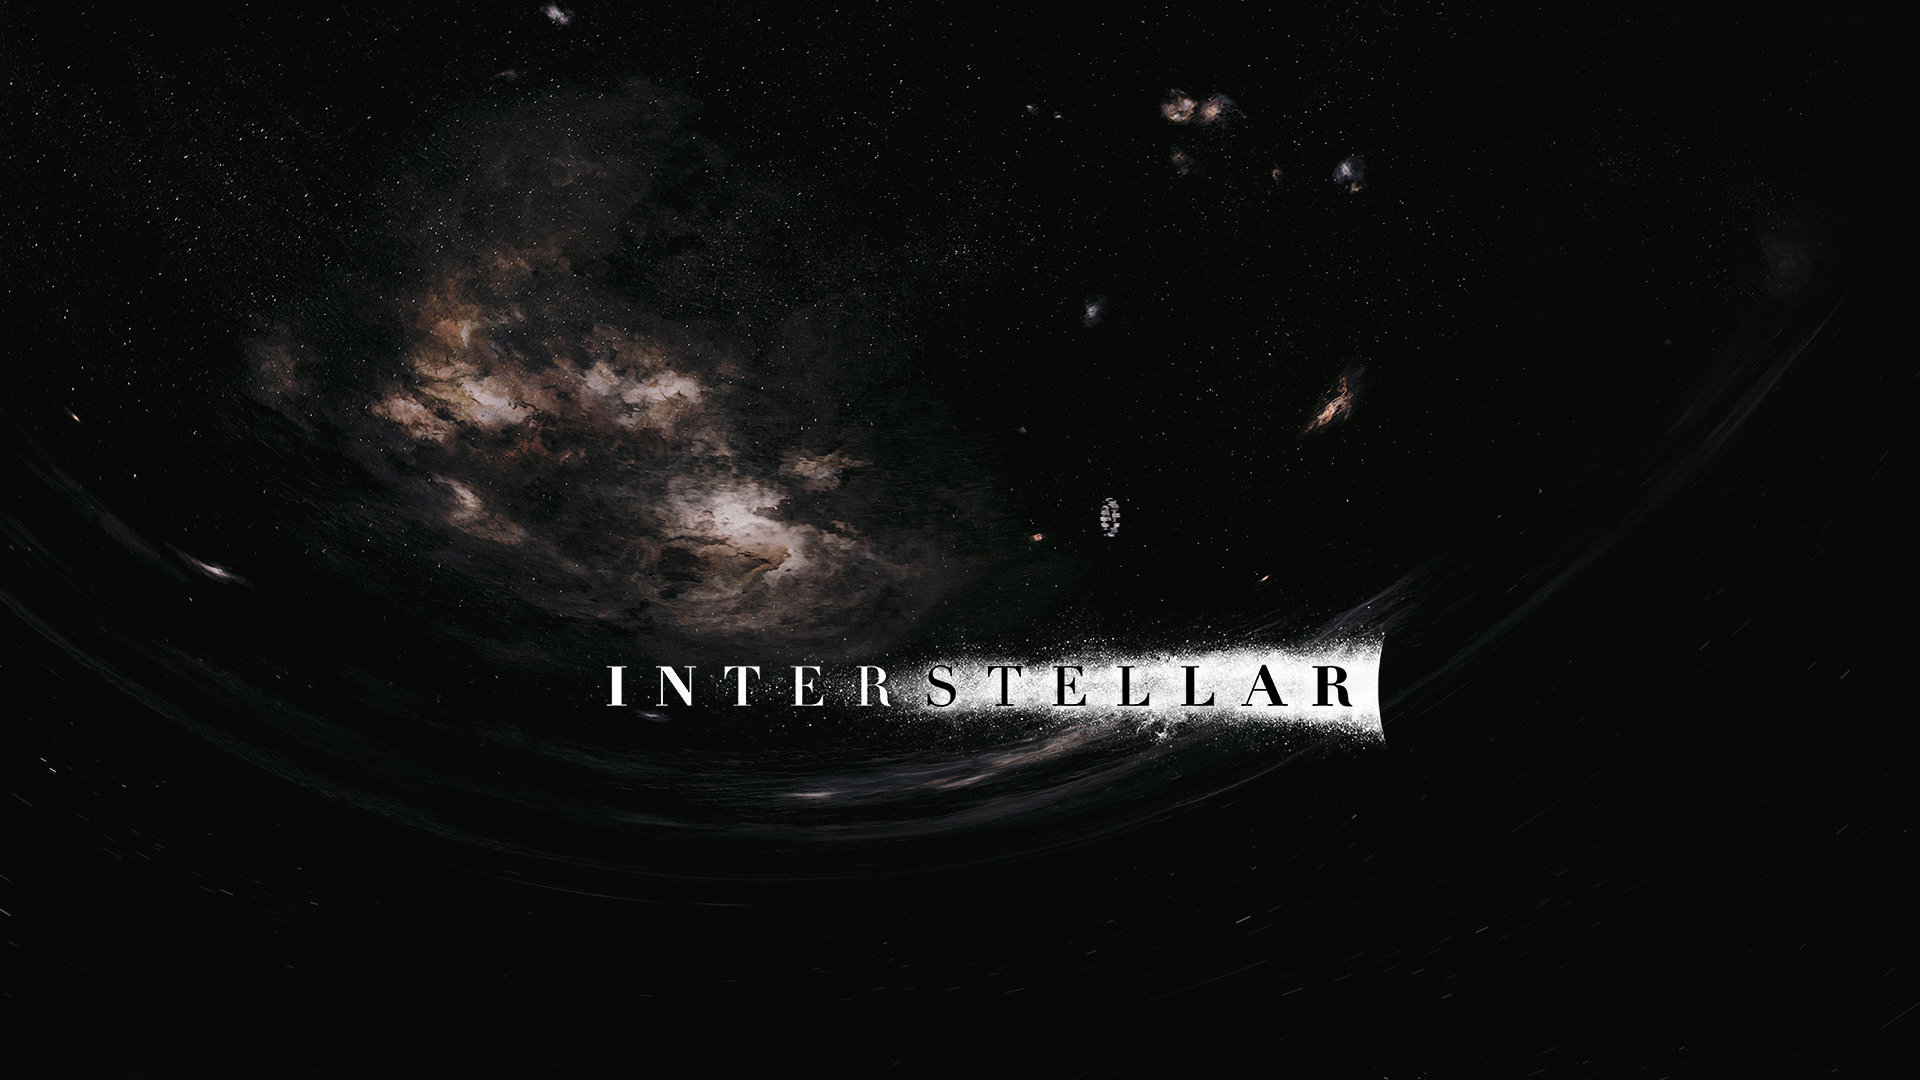 Interstellar Wormhole Wallpaper With Logo By Nordlingart